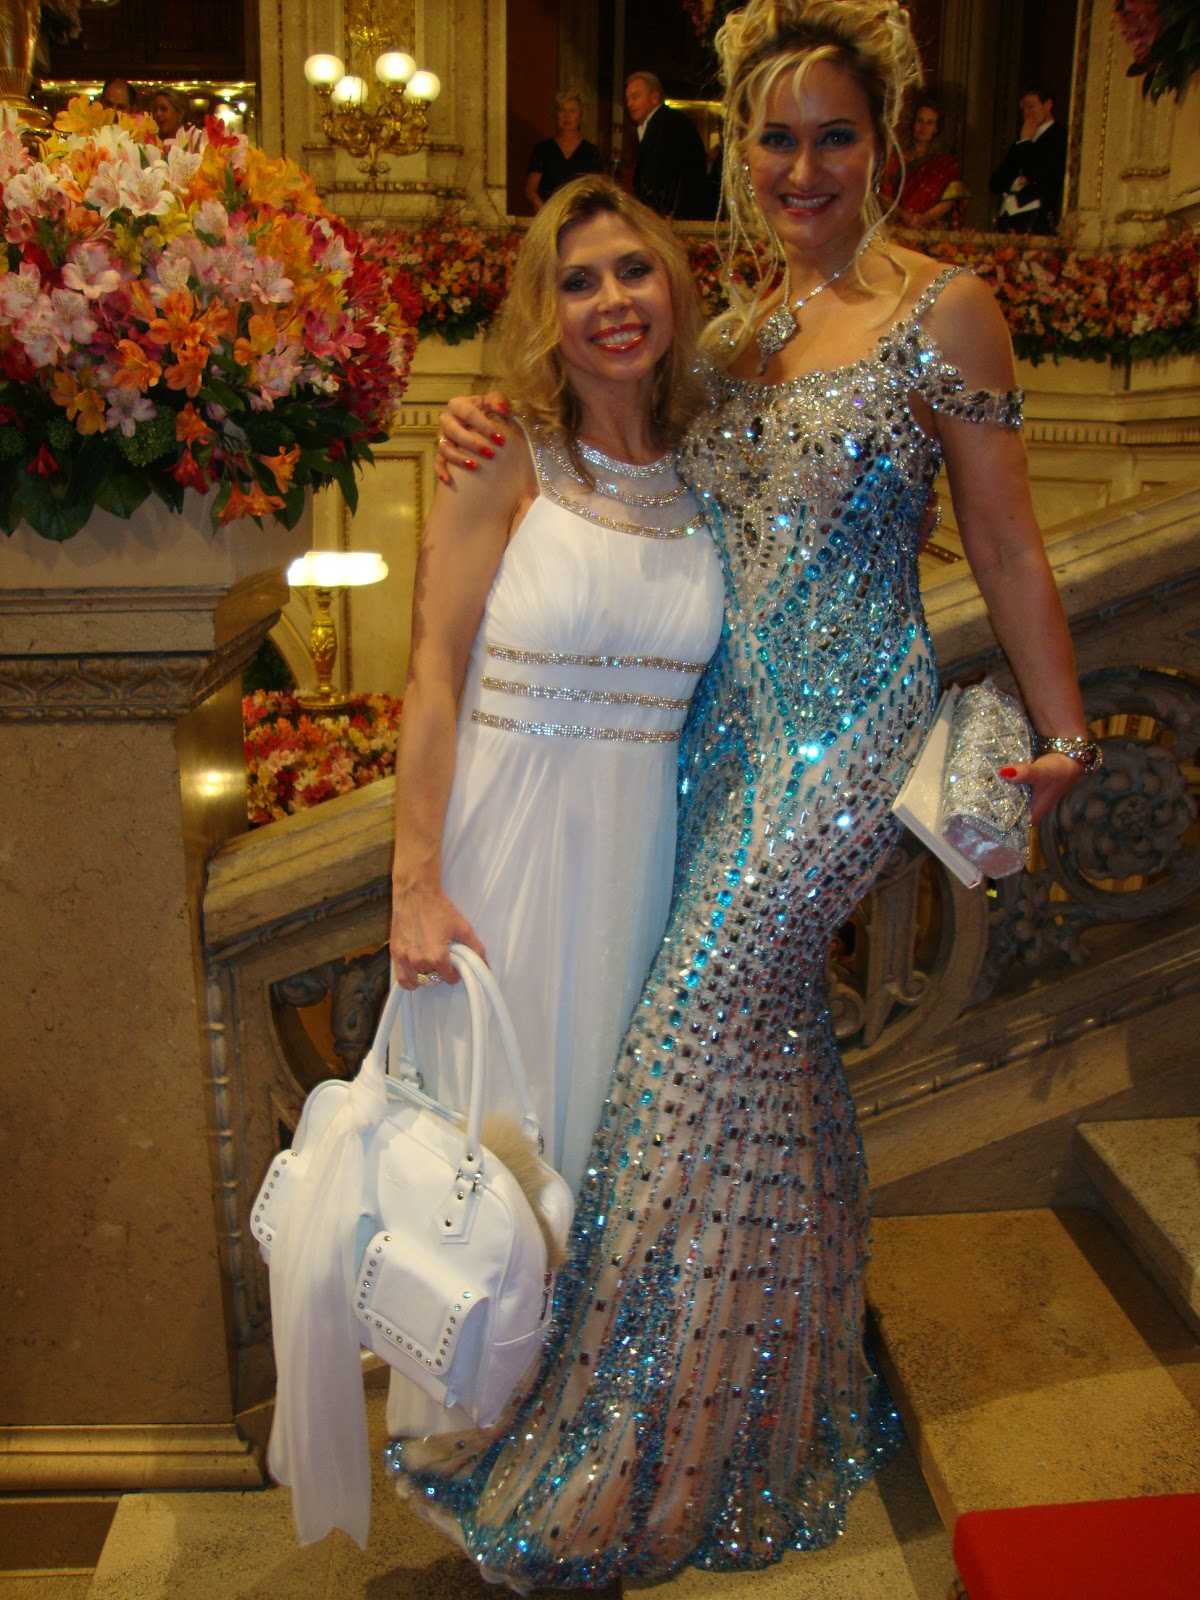 Wiener Opernball 2012 The Vienna Opera Ball 2012 The